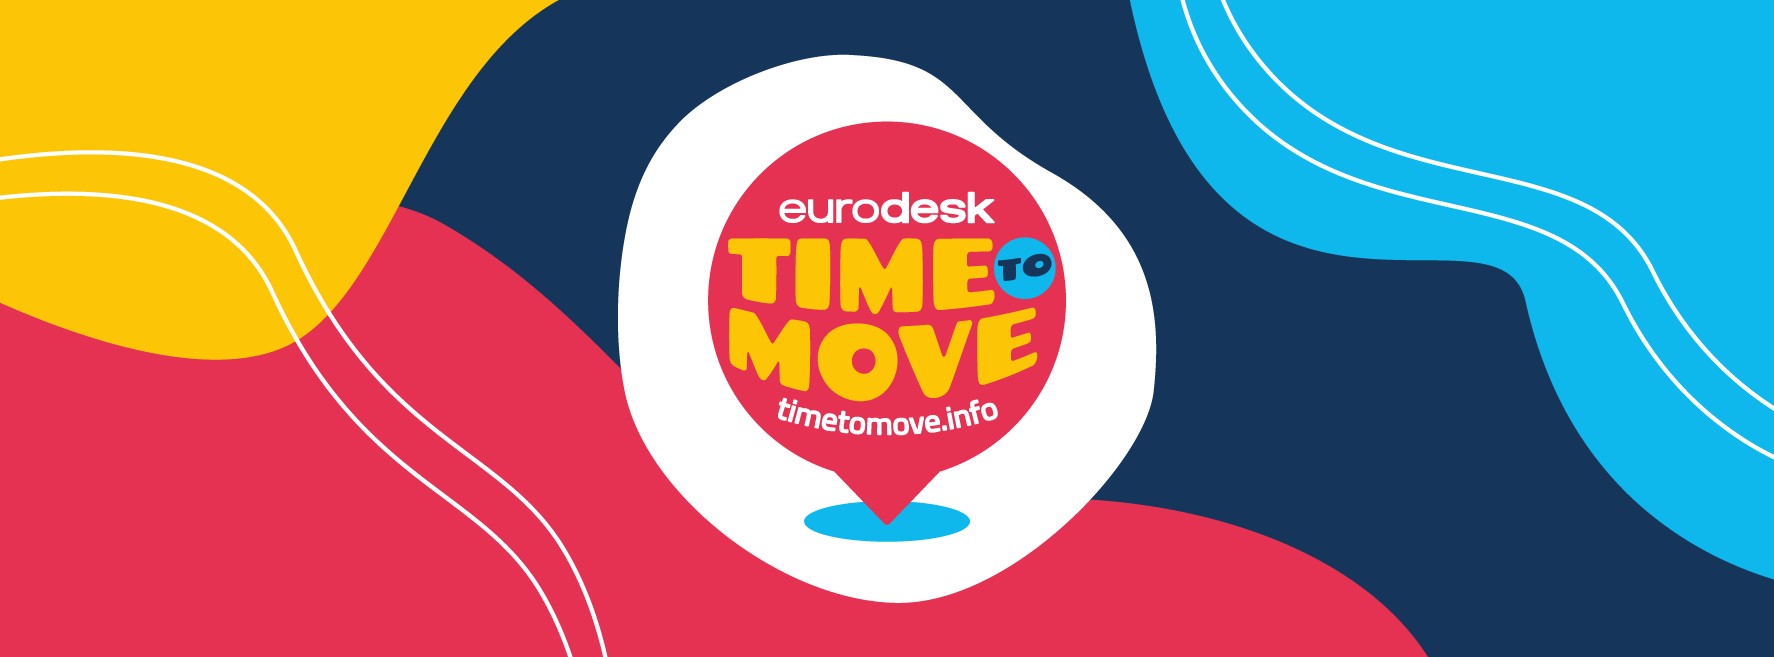 Time To Move 2021 with Eurodesk